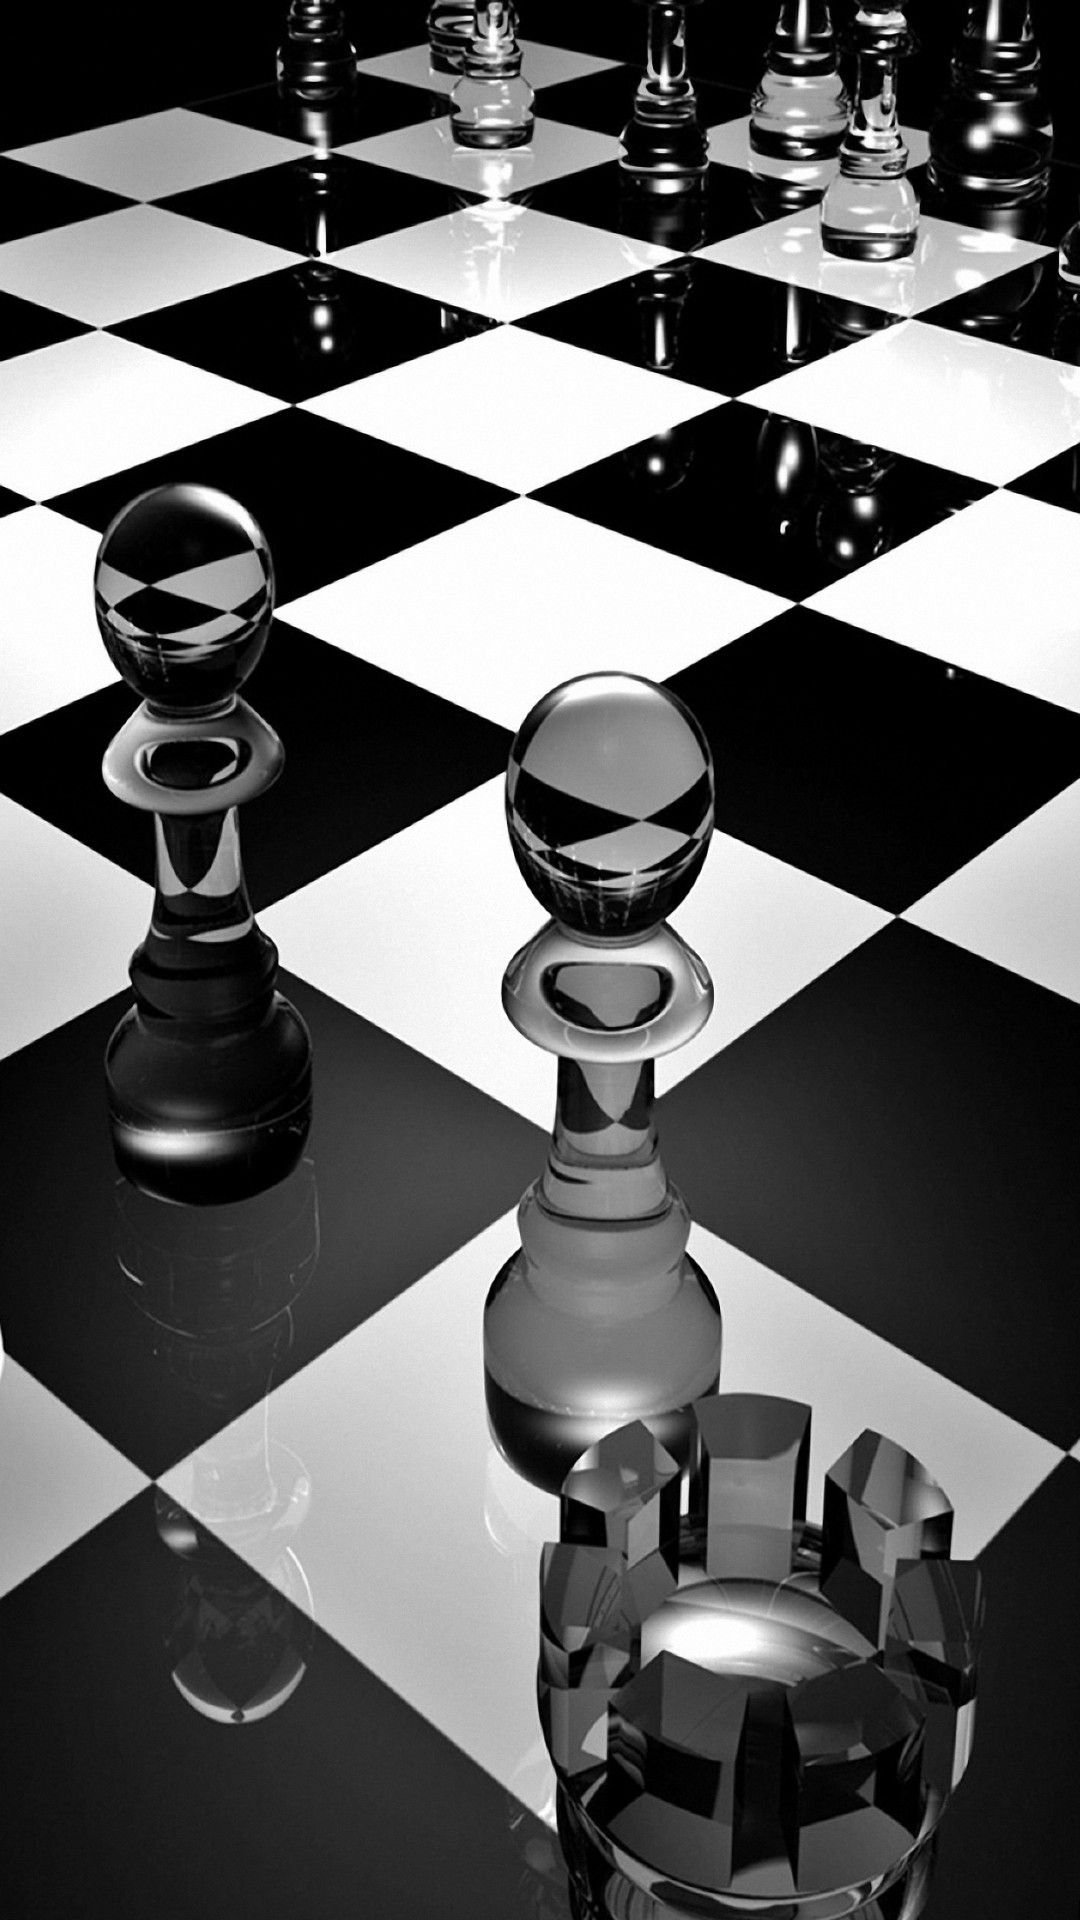 Pin By I L ə N C ə On Chesse Game With Images 3d